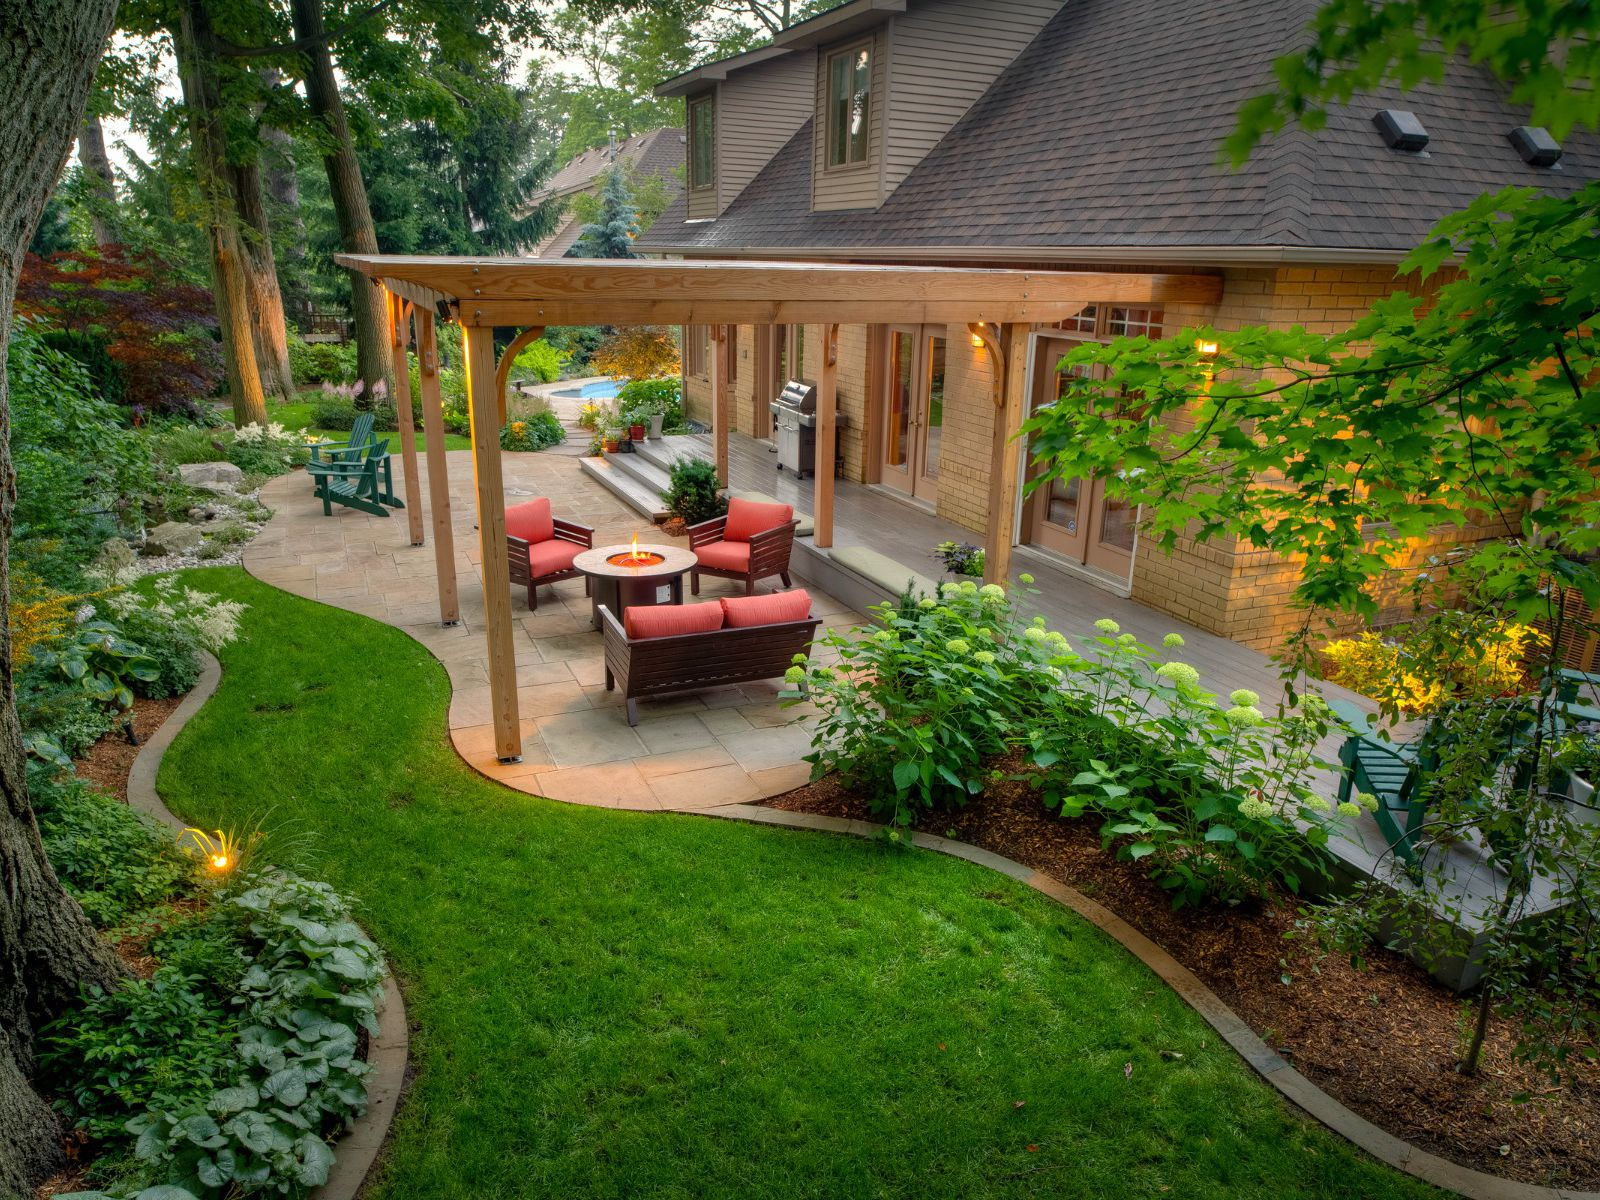 50 Backyard Landscaping Ideas To